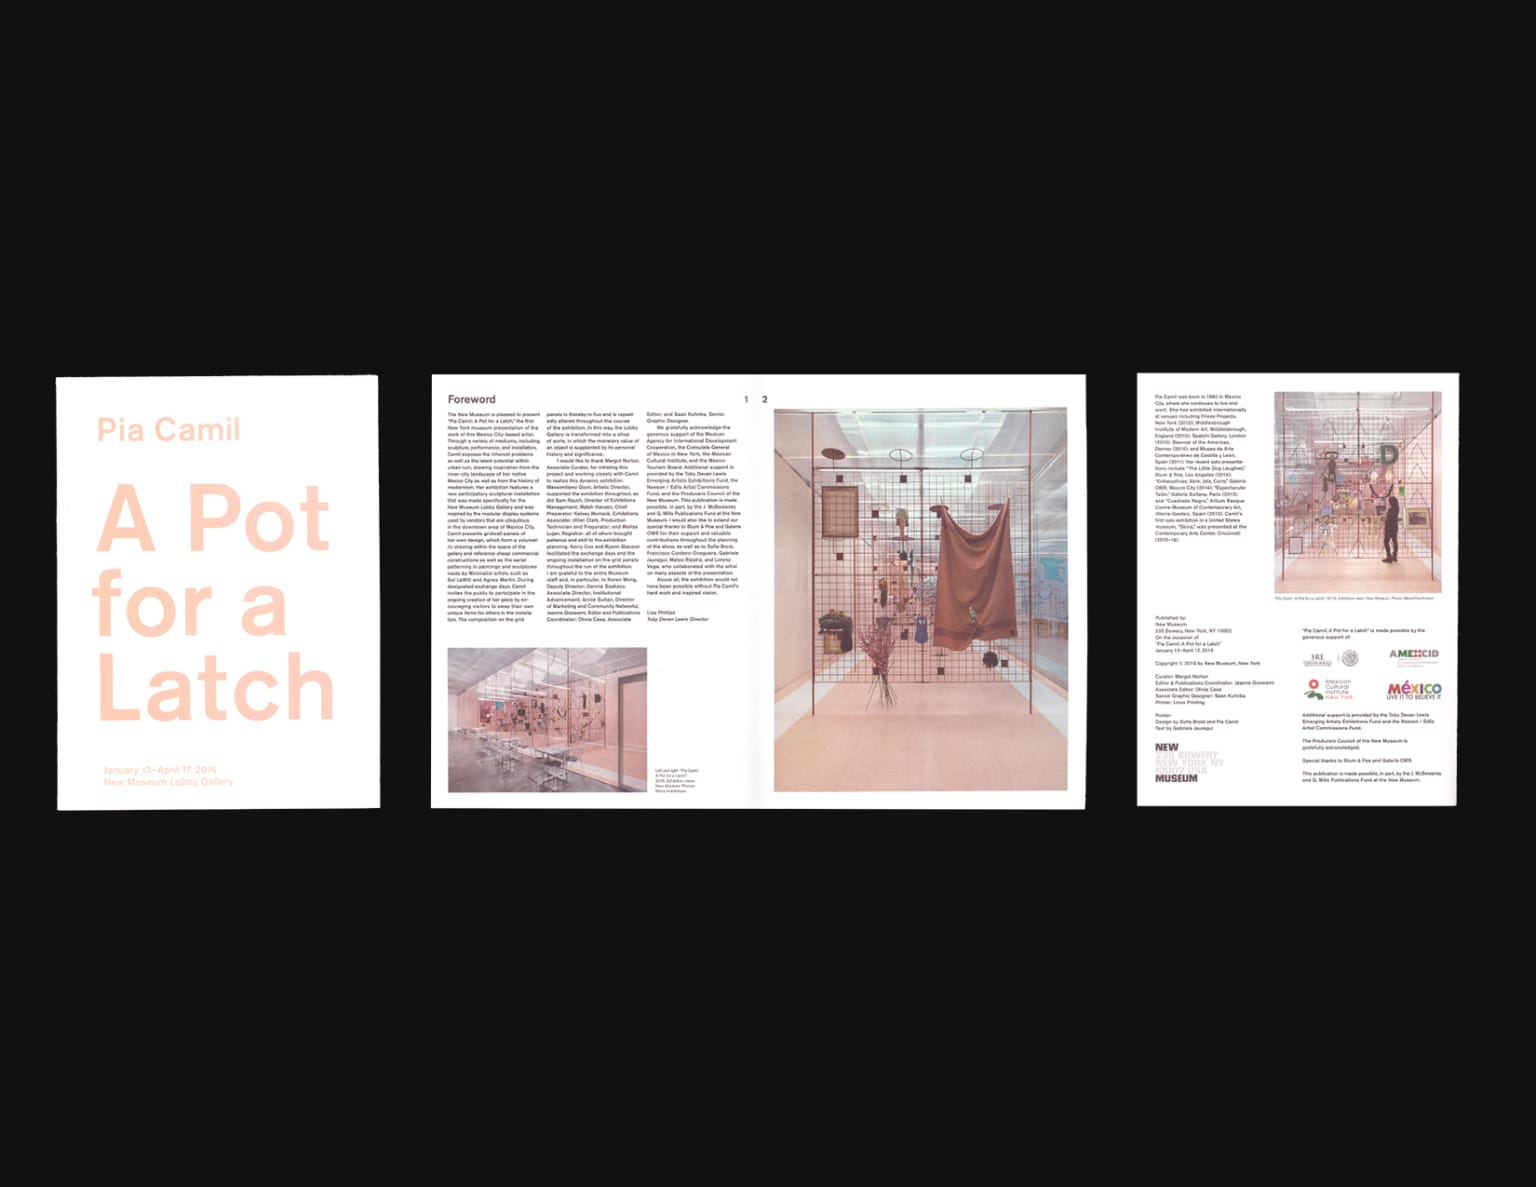 Pia Camil, A Pot for a Latch; Broadsheet